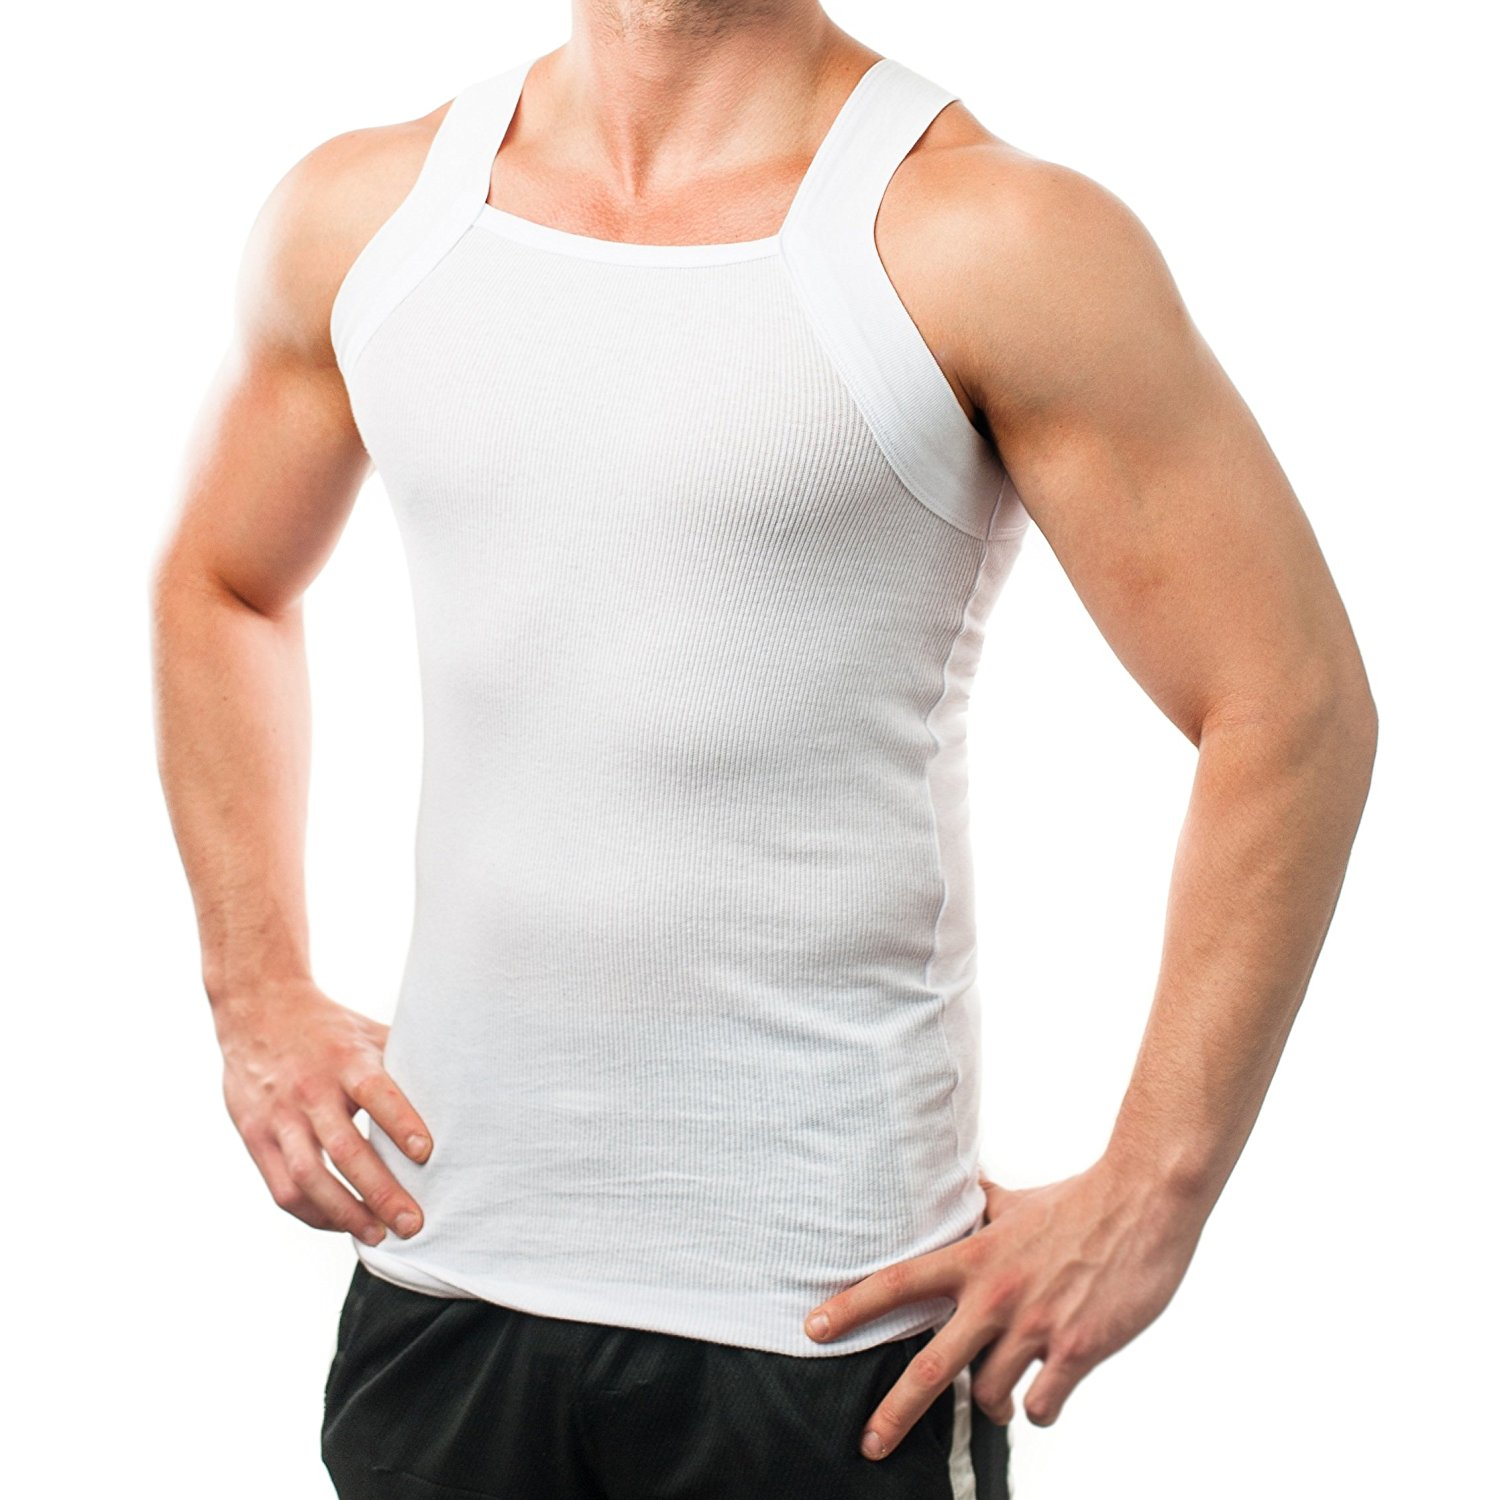 90cd1c7219610 ... Ribbed Wife Beater Underwear Shirts 7.99. Different Touch Men s G-unit  Style Tank Tops Square Cut Muscle Rib A-Shirts